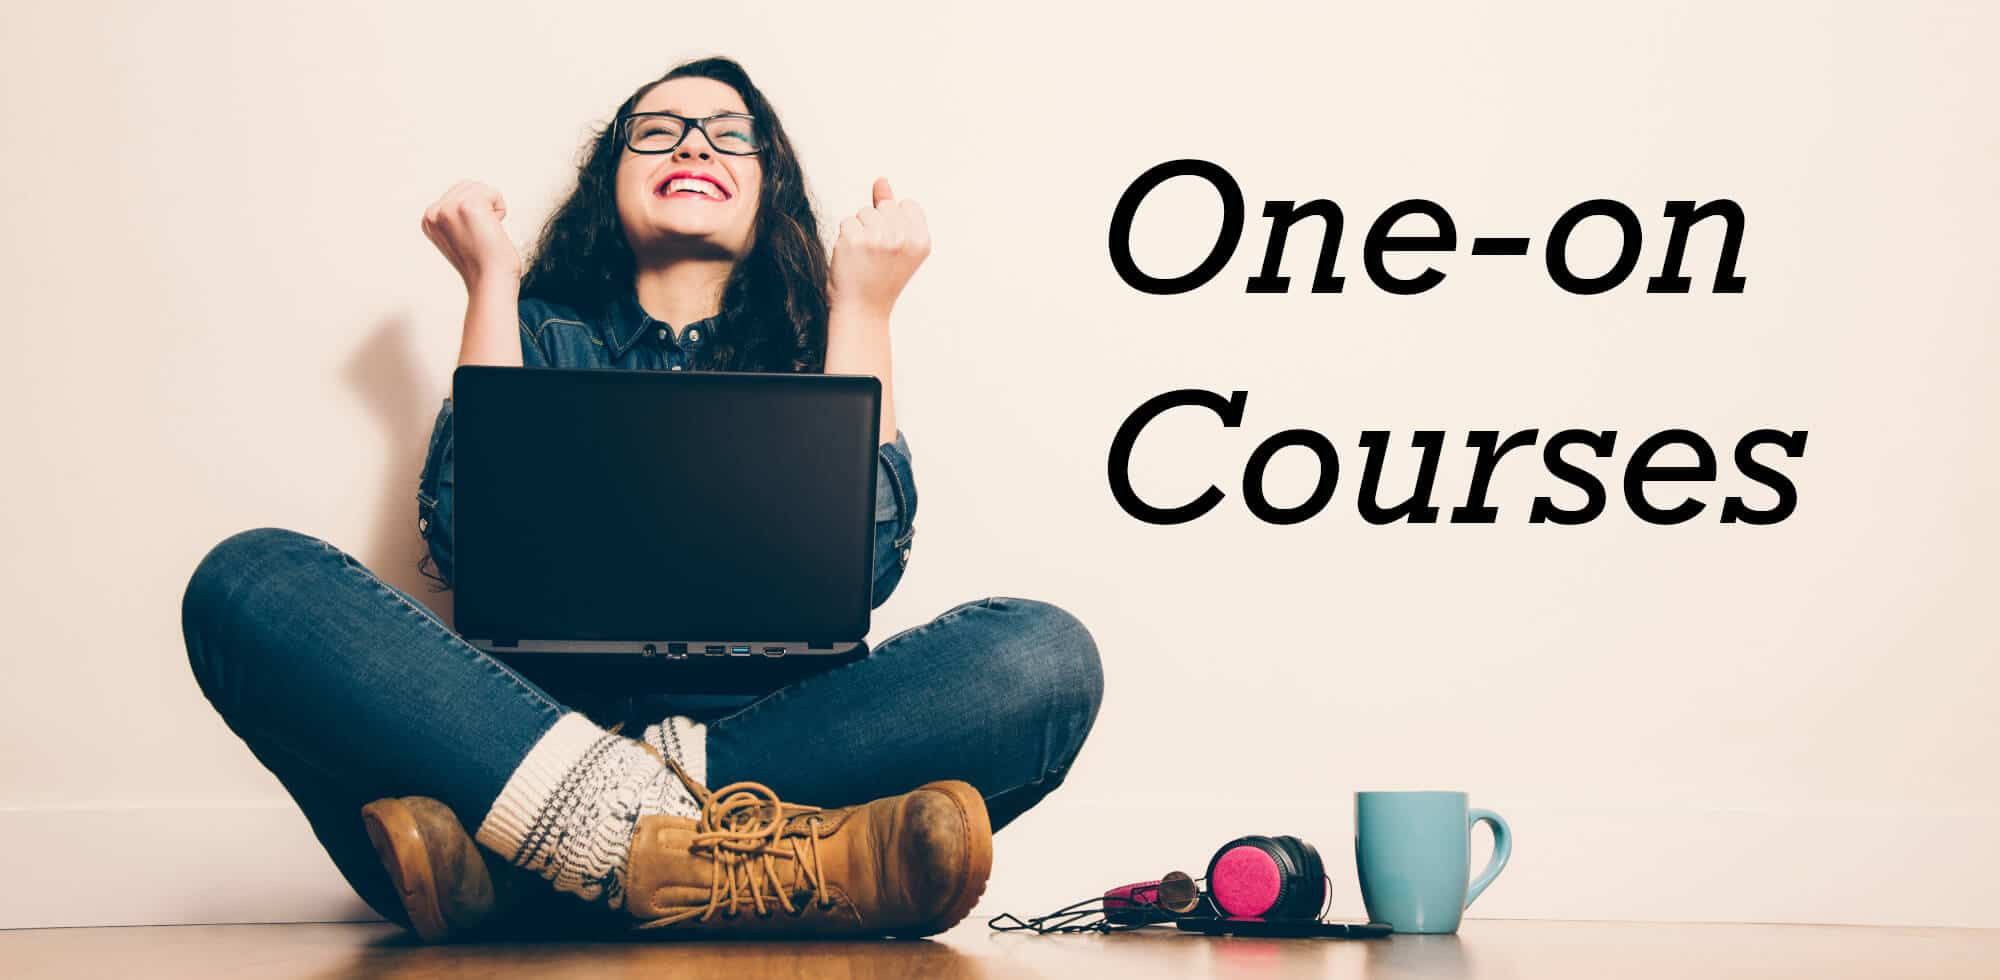 One-on Courses - woman excited holding laptop